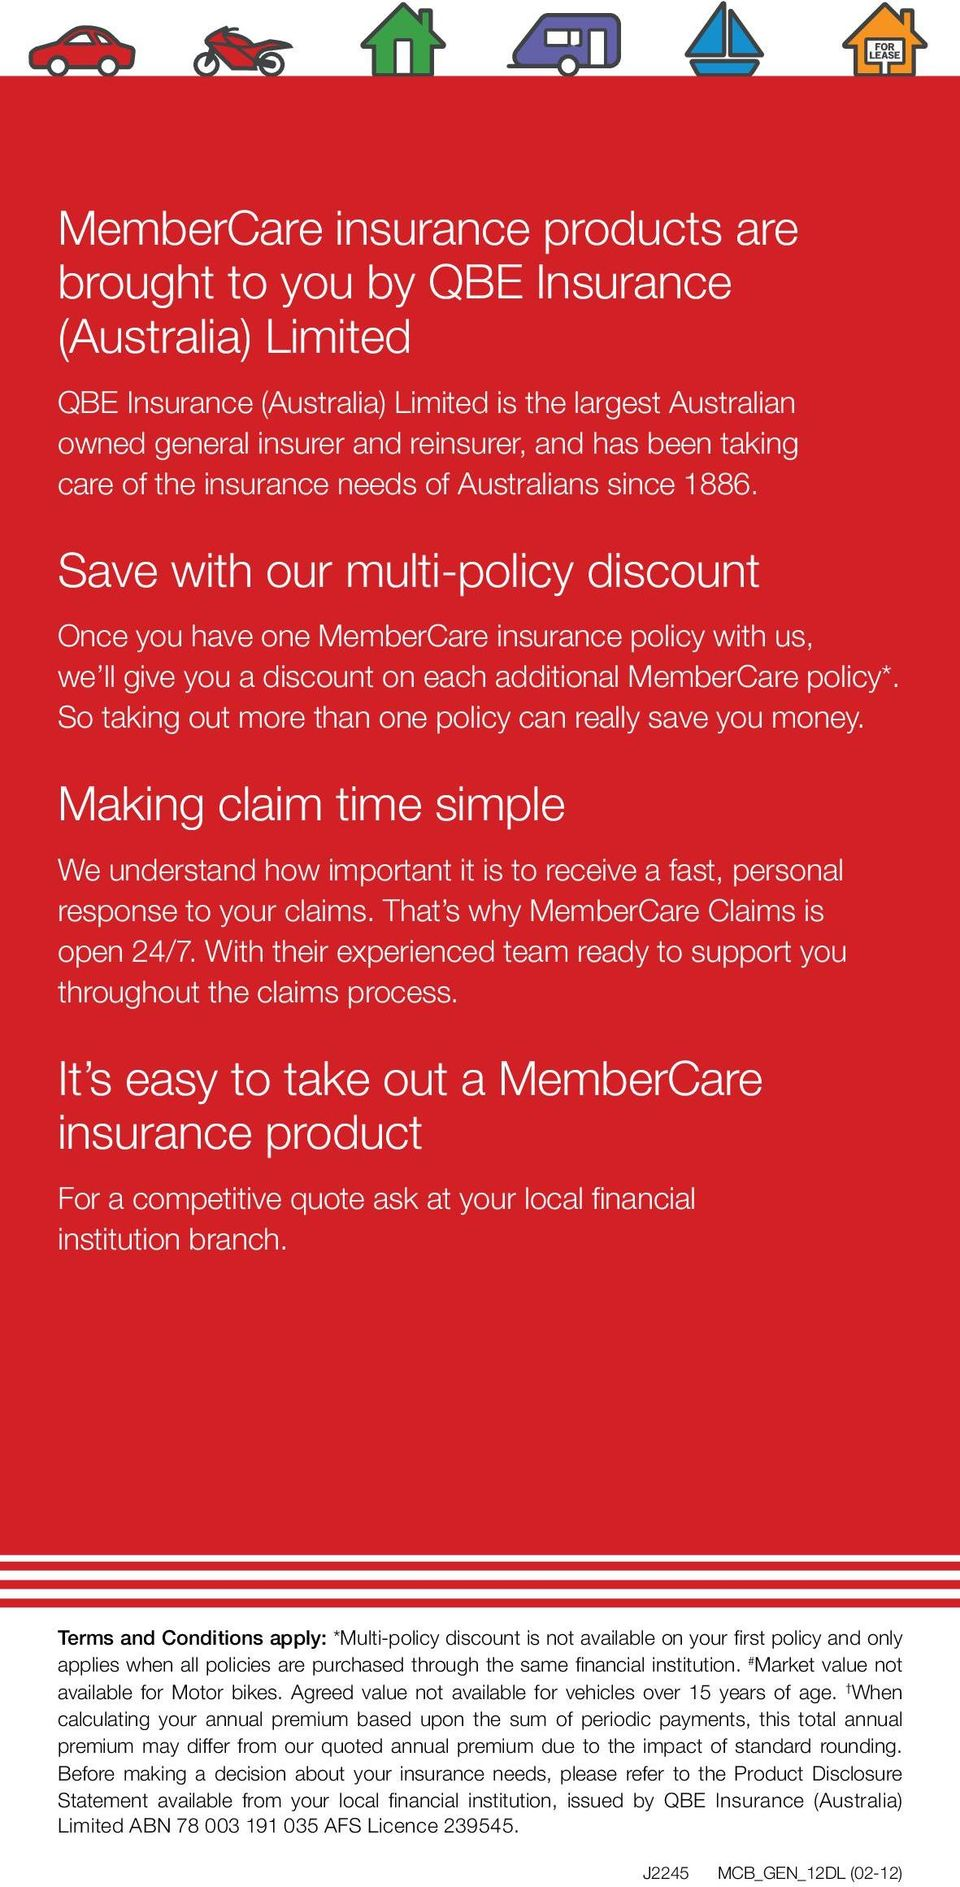 Save with our multi-policy discount Once you have one MemberCare insurance policy with us, we ll give you a discount on each additional MemberCare policy*.